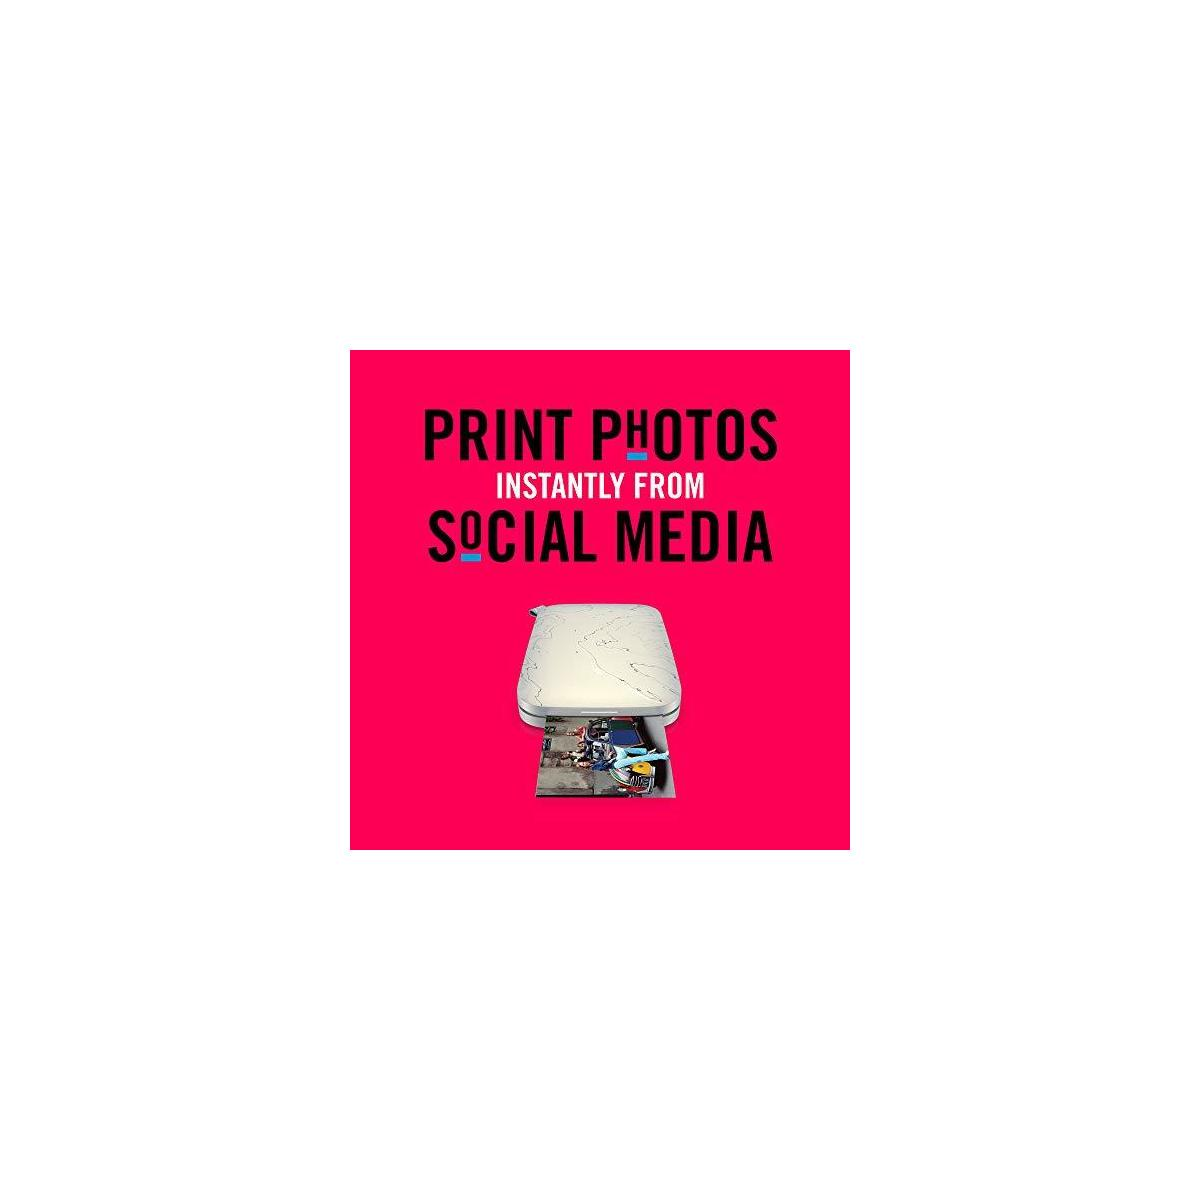 """HP Sprocket Select Portable Photo Printer – Stylize Social Media Photos and Print 30% Larger Pictures on 2.3x3.4"""" Sticky-Backed Paper (5XH49A)"""